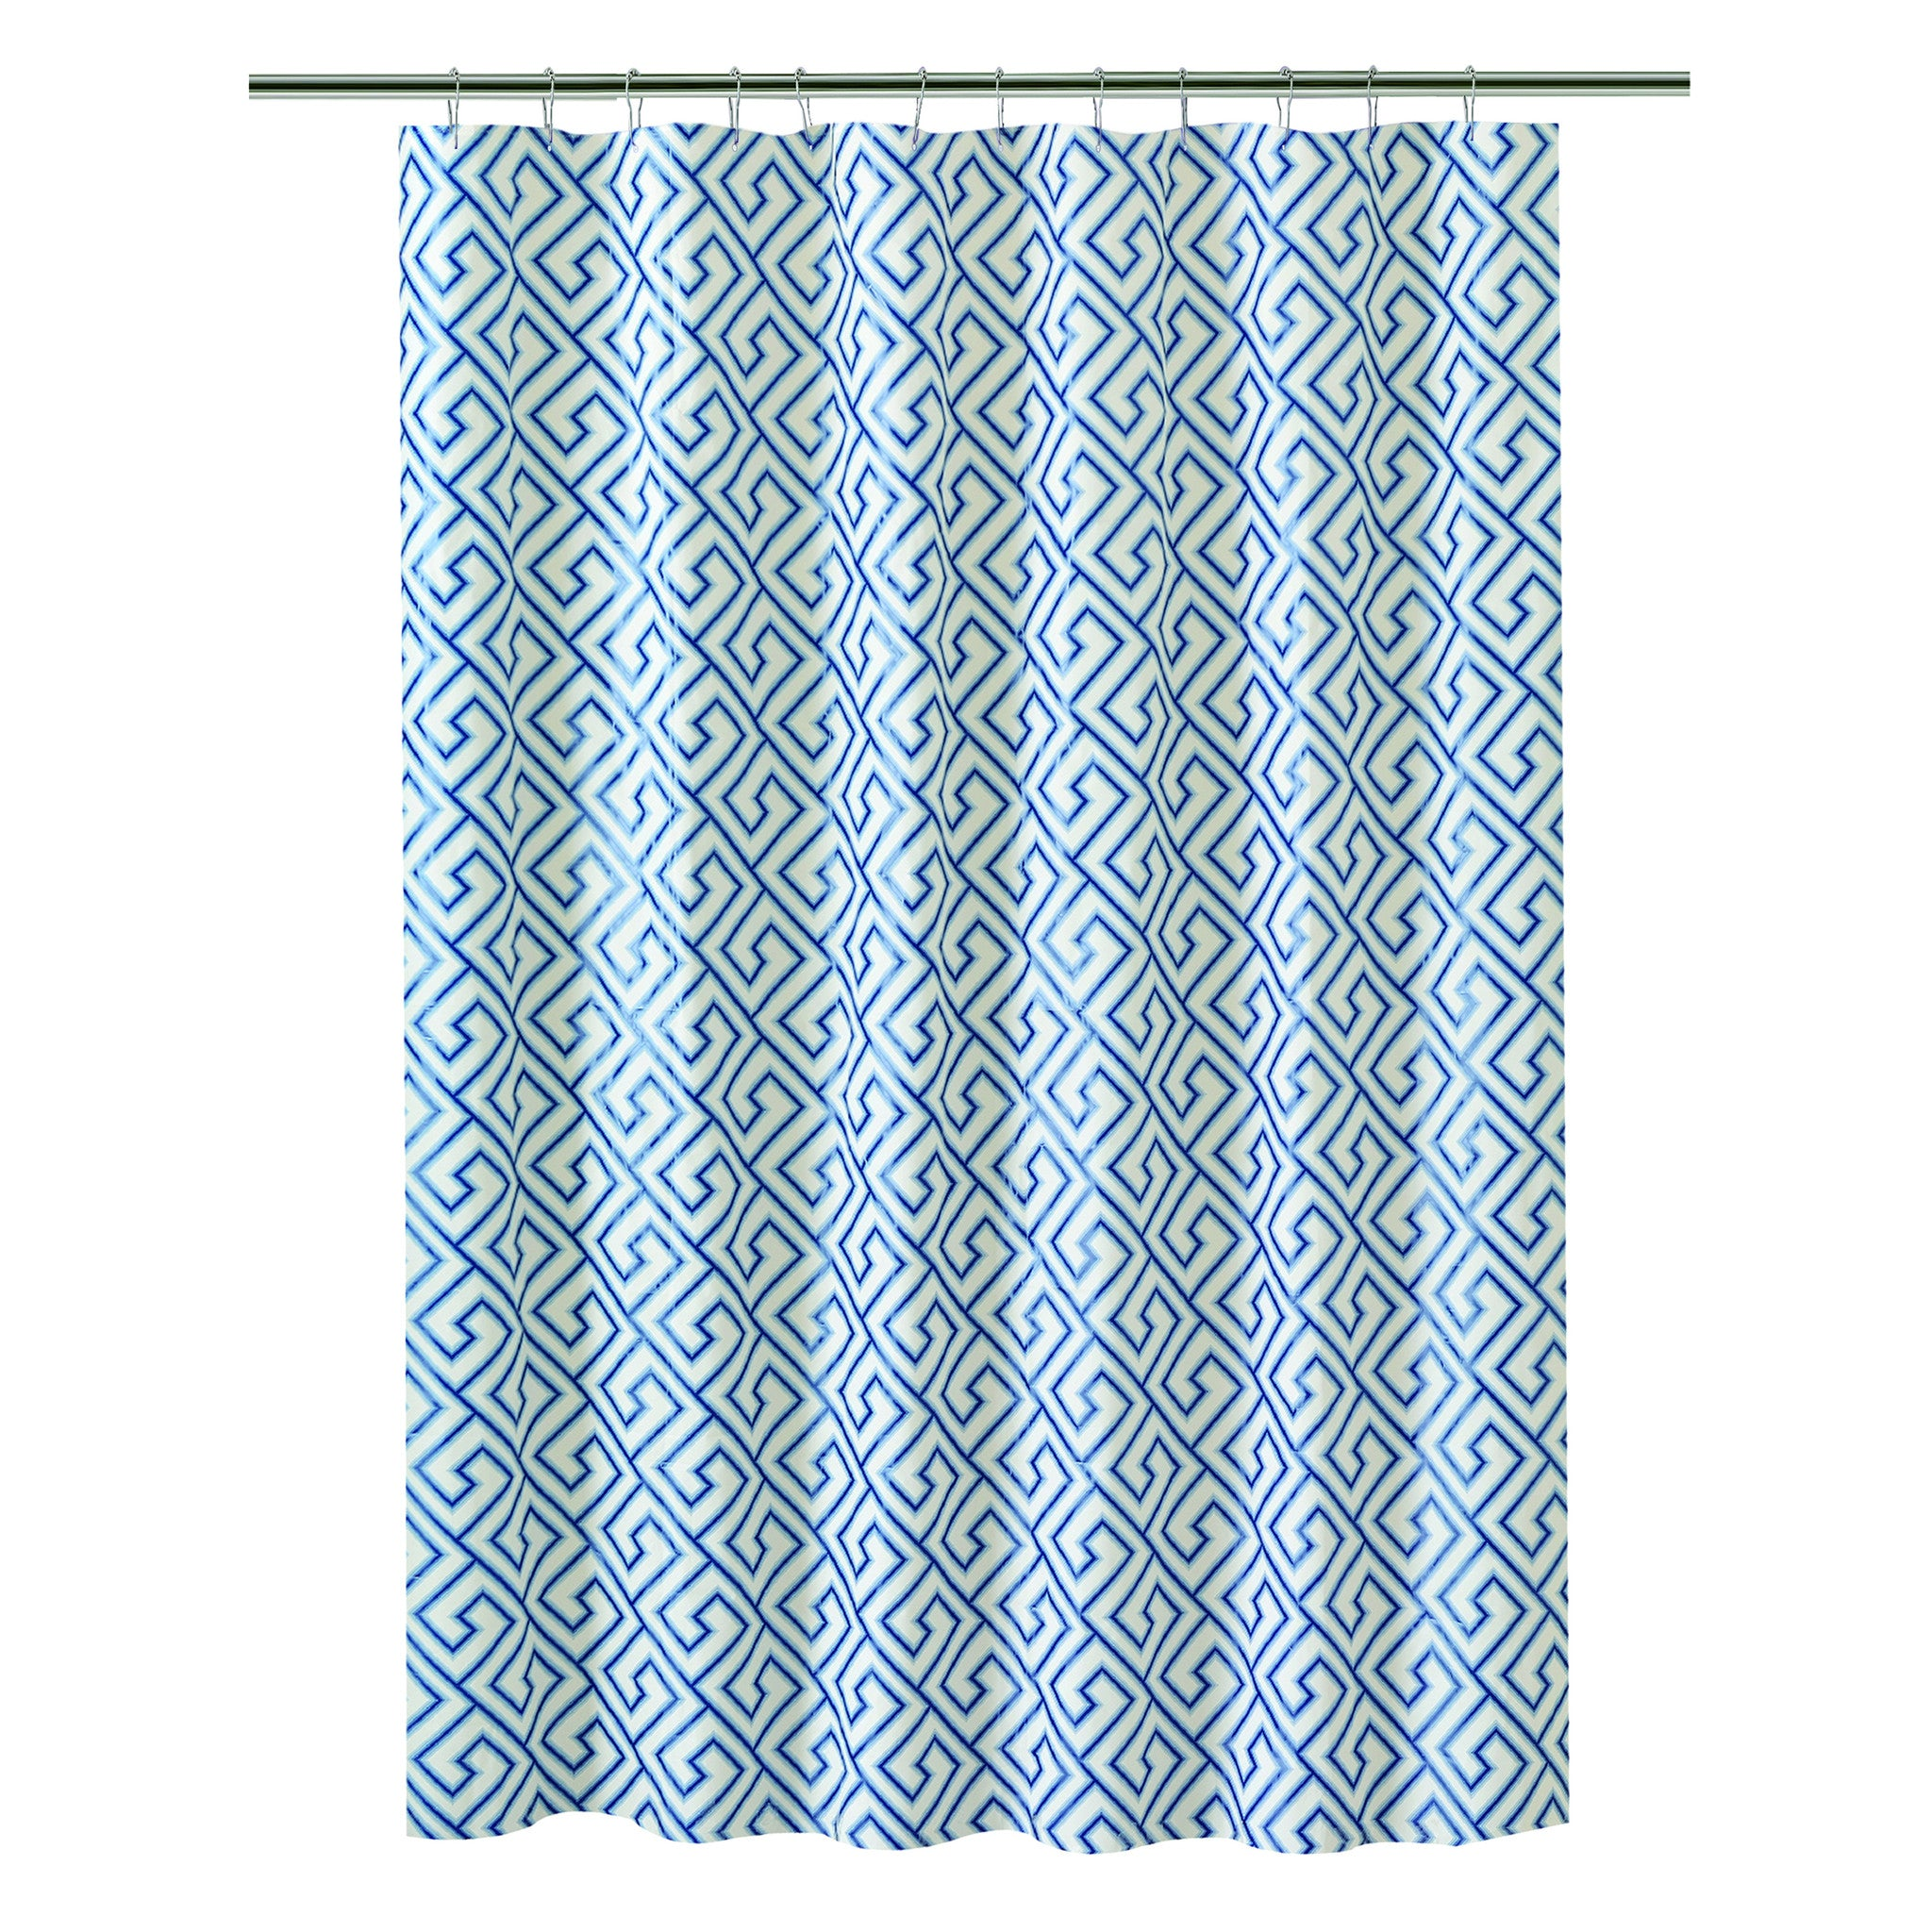 Bath Bliss Shower Curtain In Blue Key Design Space With Taste